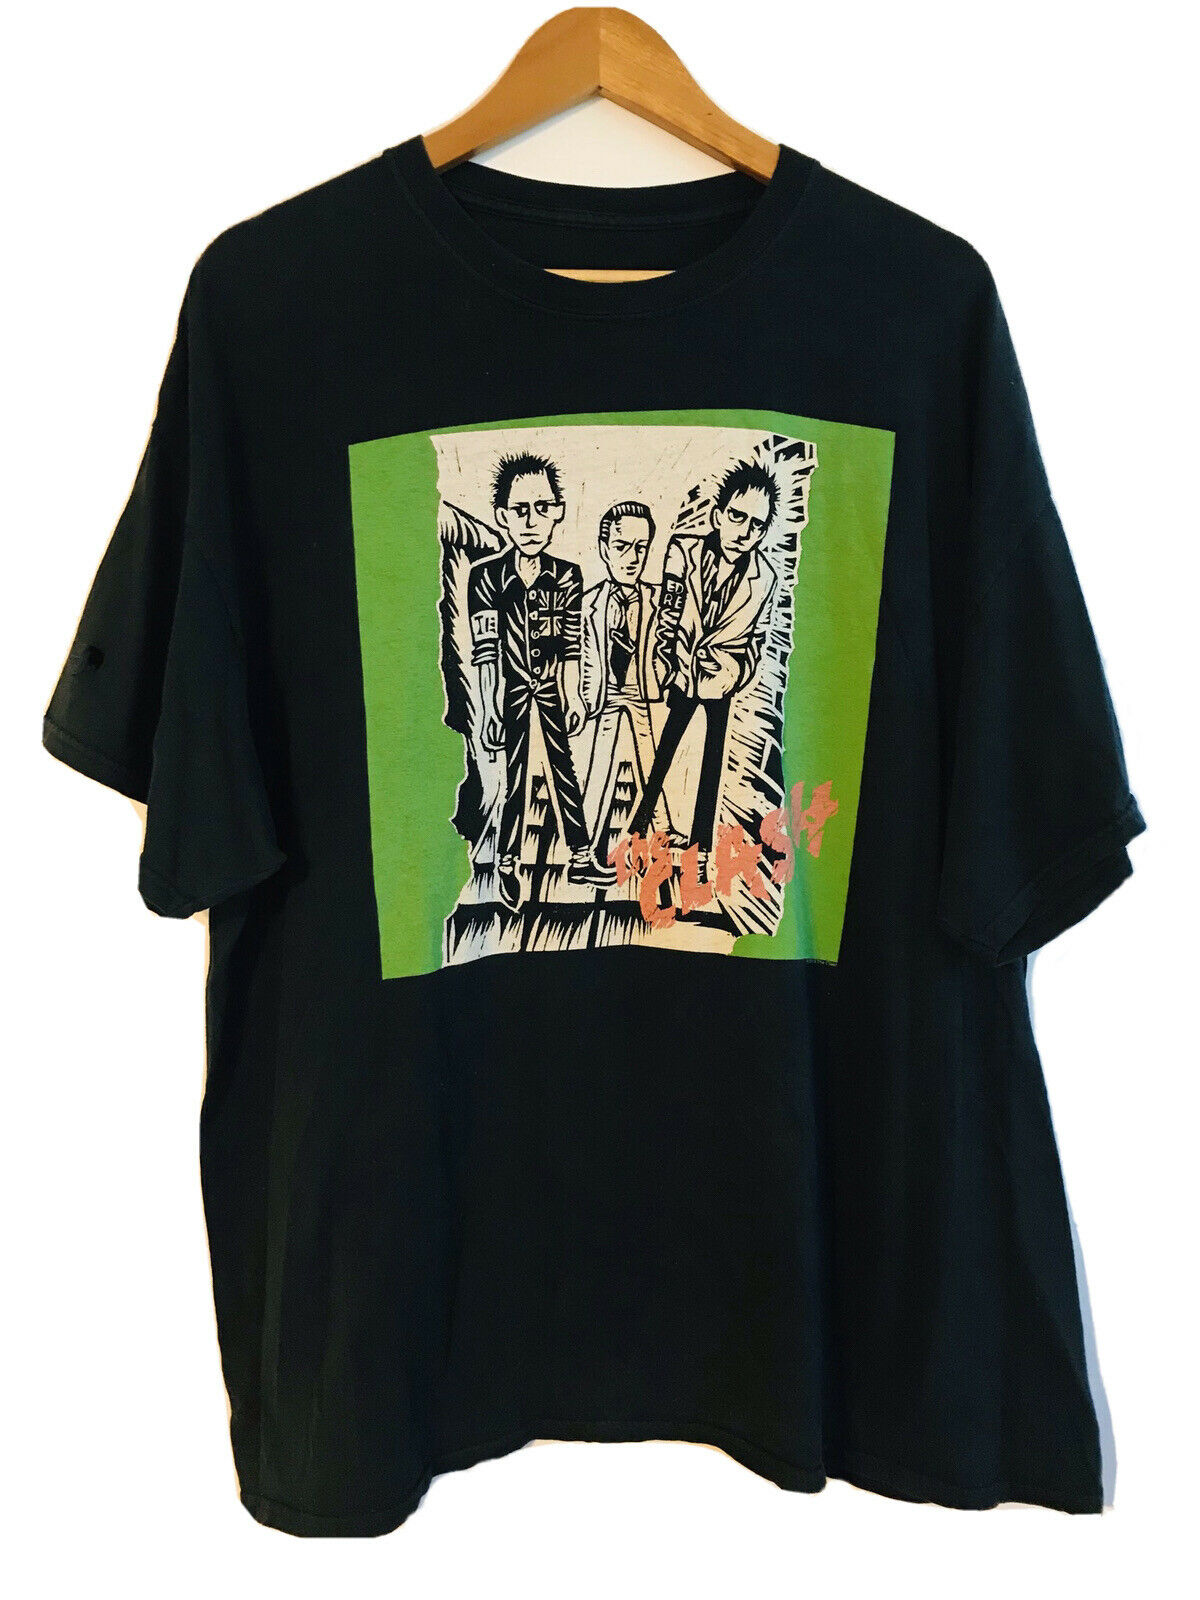 The Clash 3XL Distressed T Shirt not cd - image 1